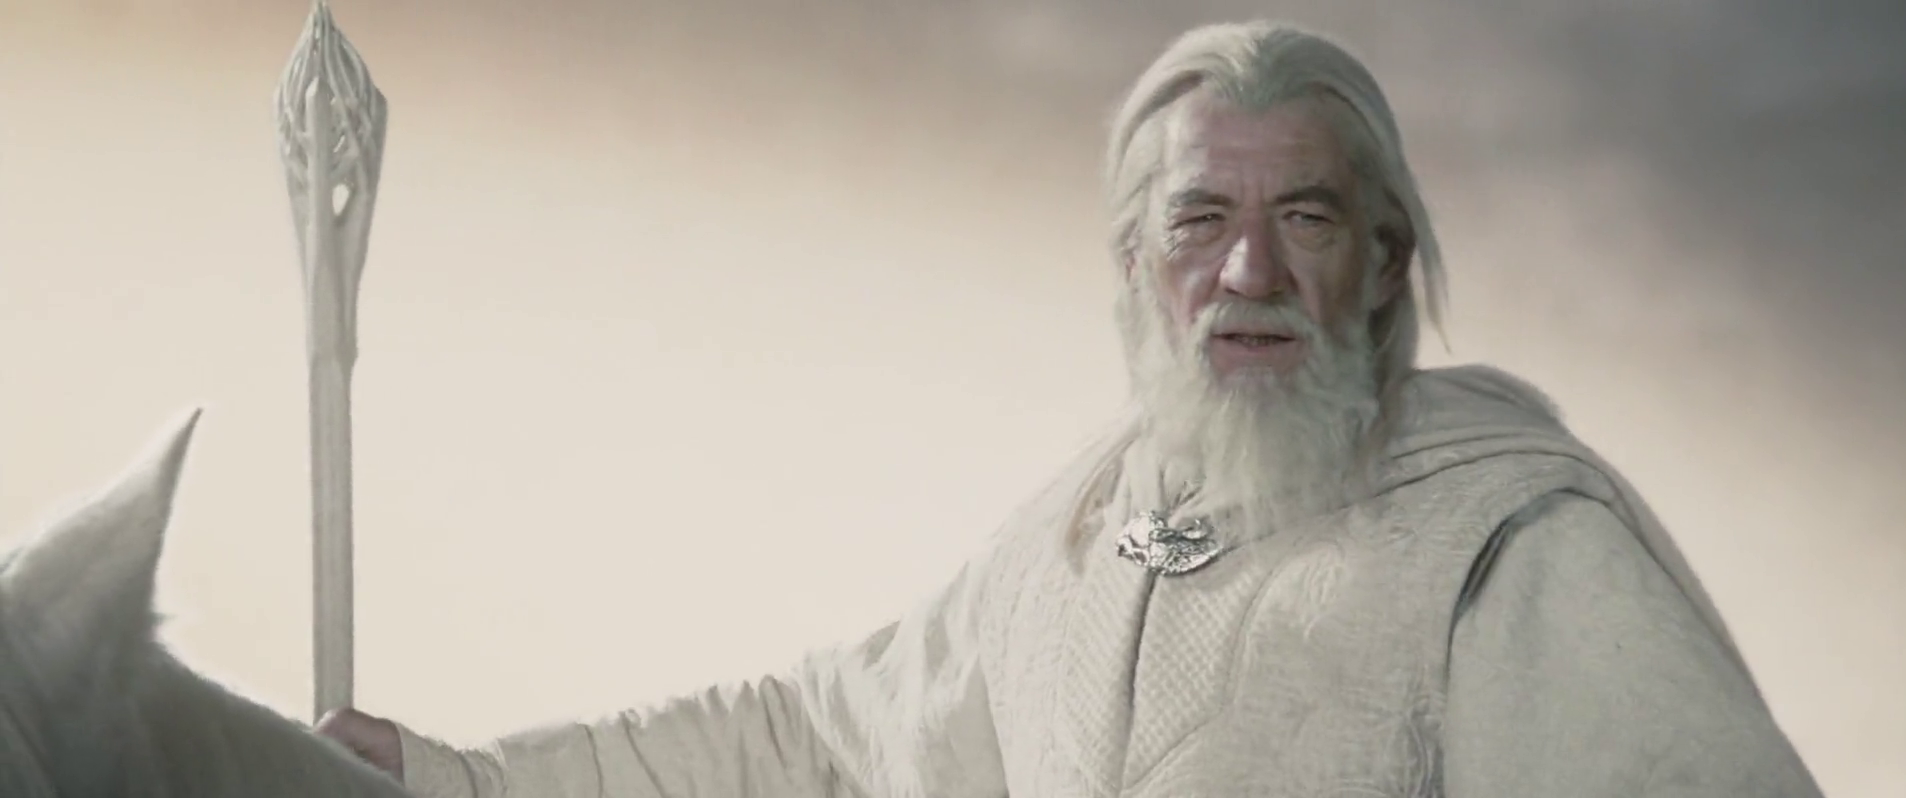 Gandalf_the_White_returns